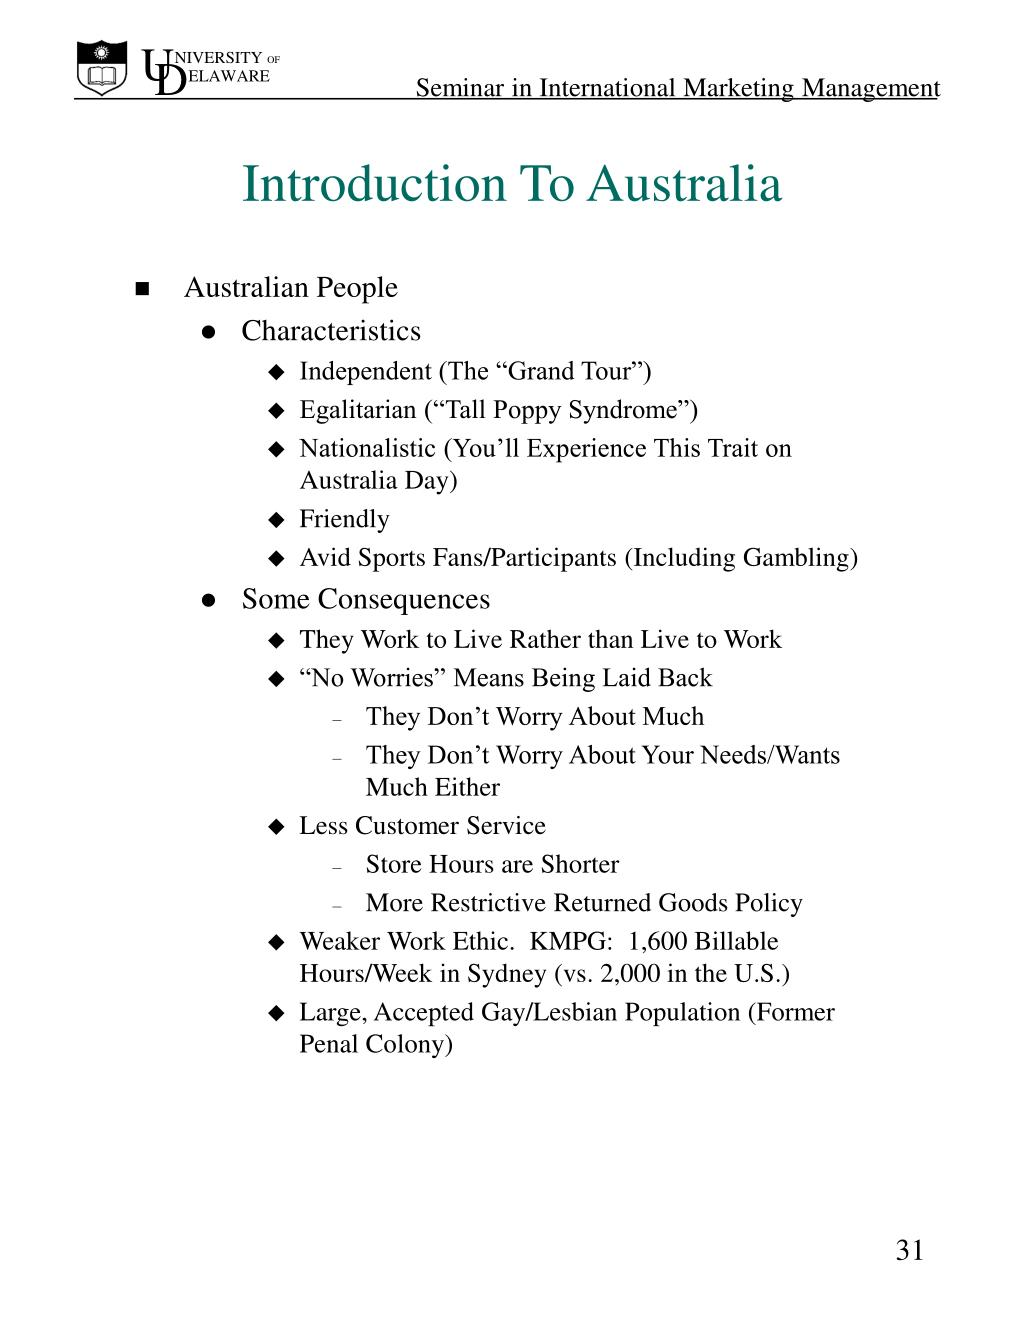 Introduction To Australia